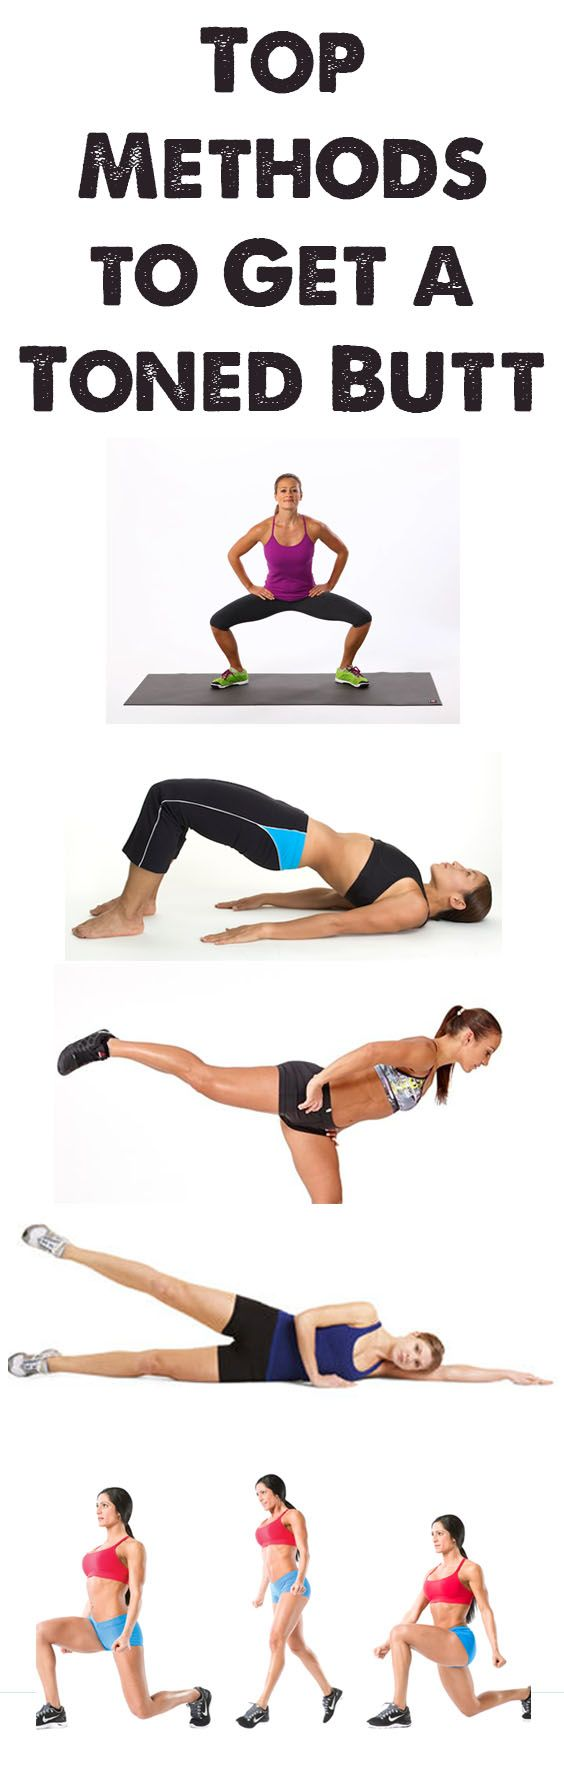 Top Methods To Get A Toned Butt